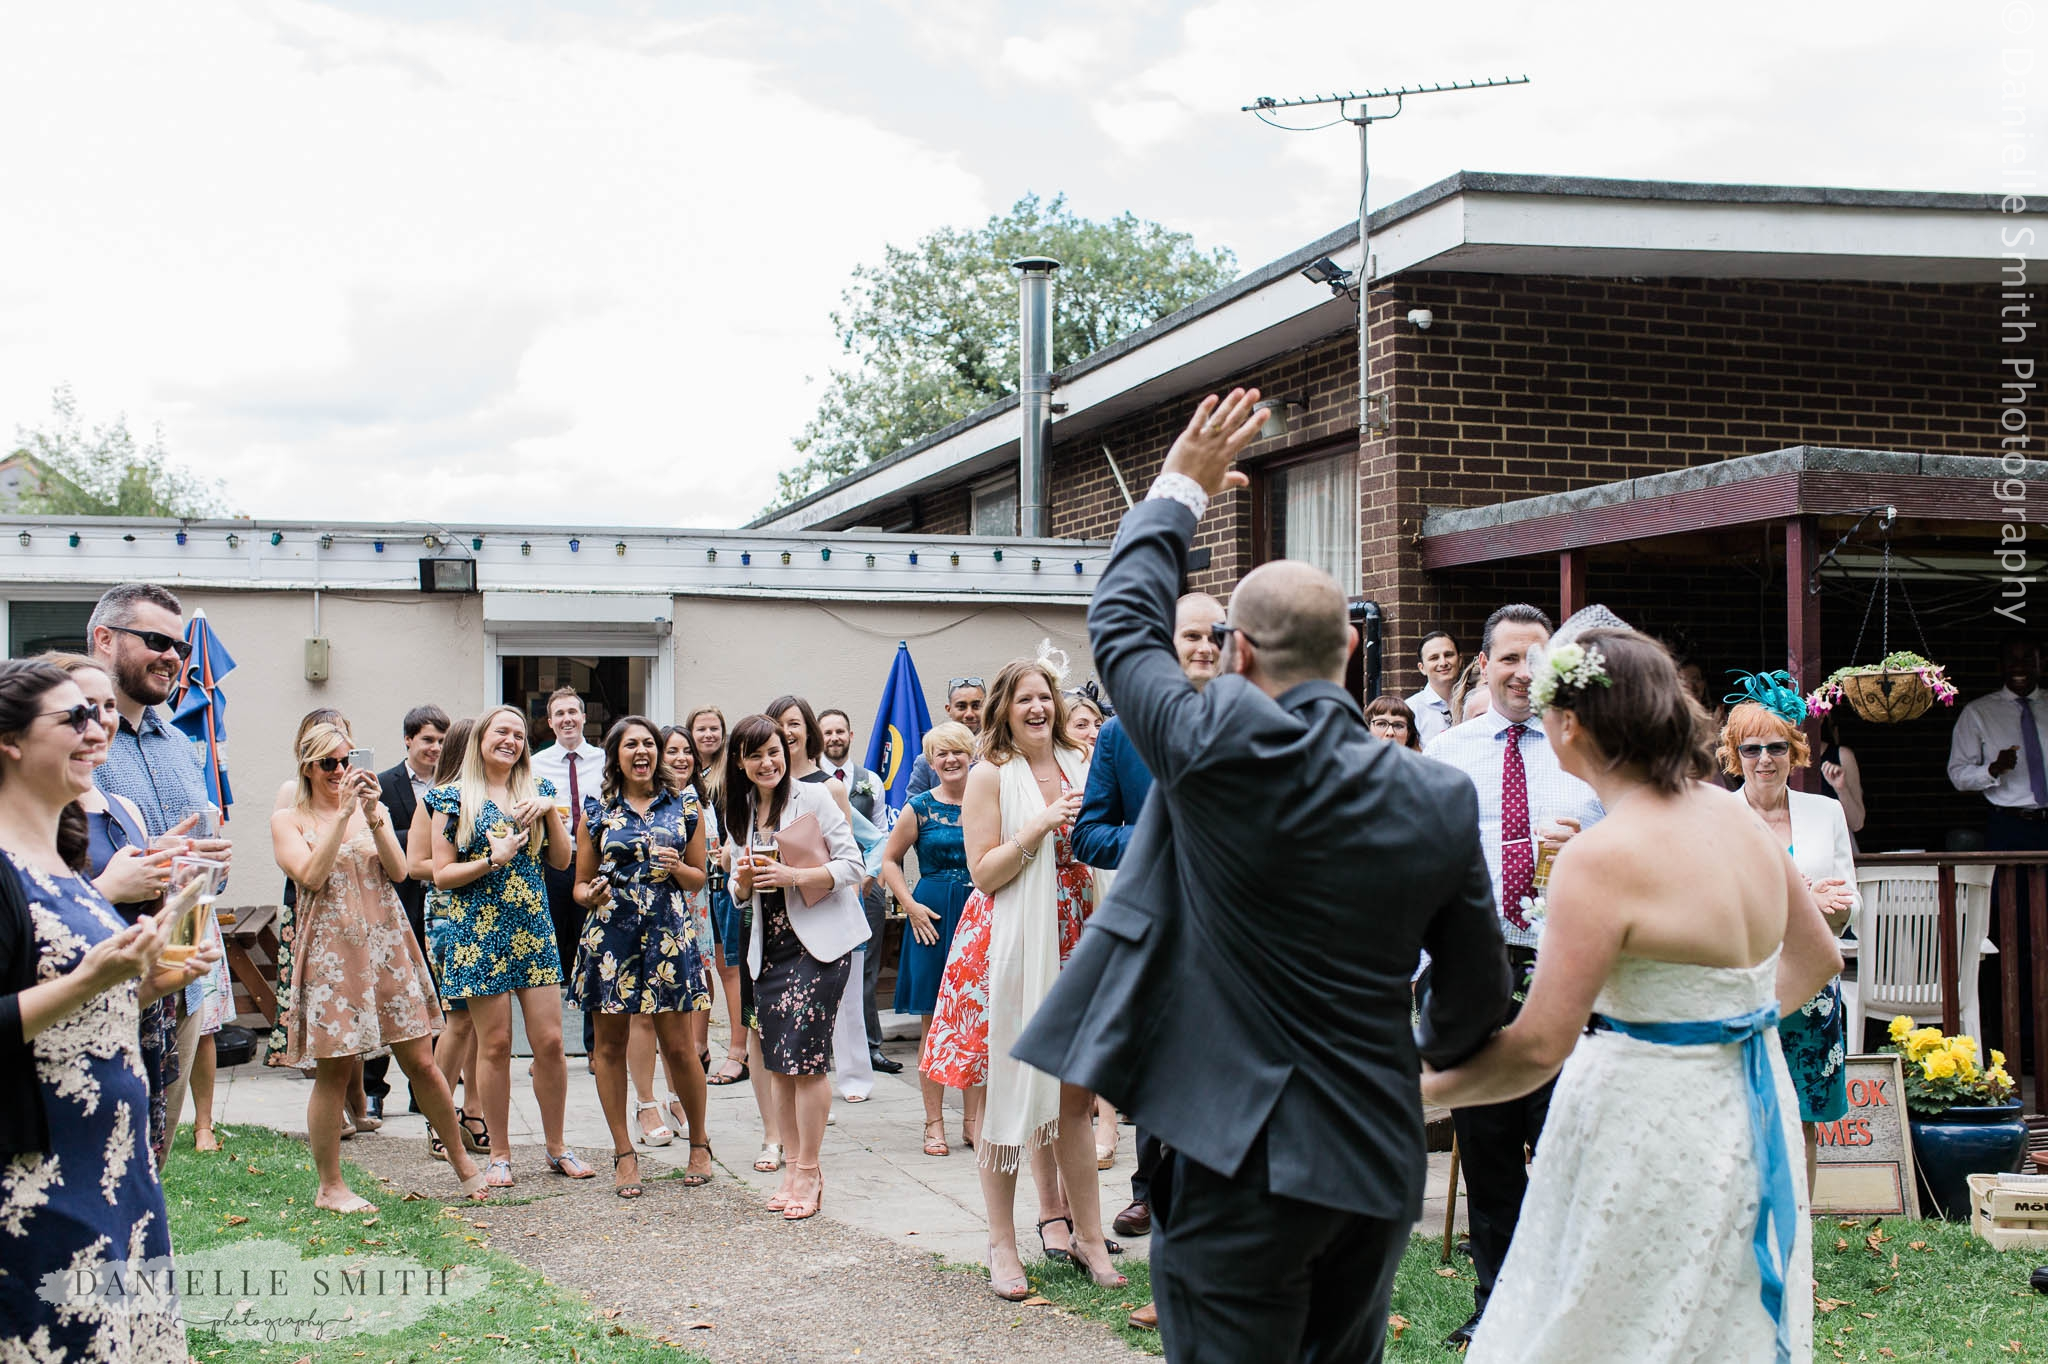 wedding guests cheering bride and groom - east london wedding